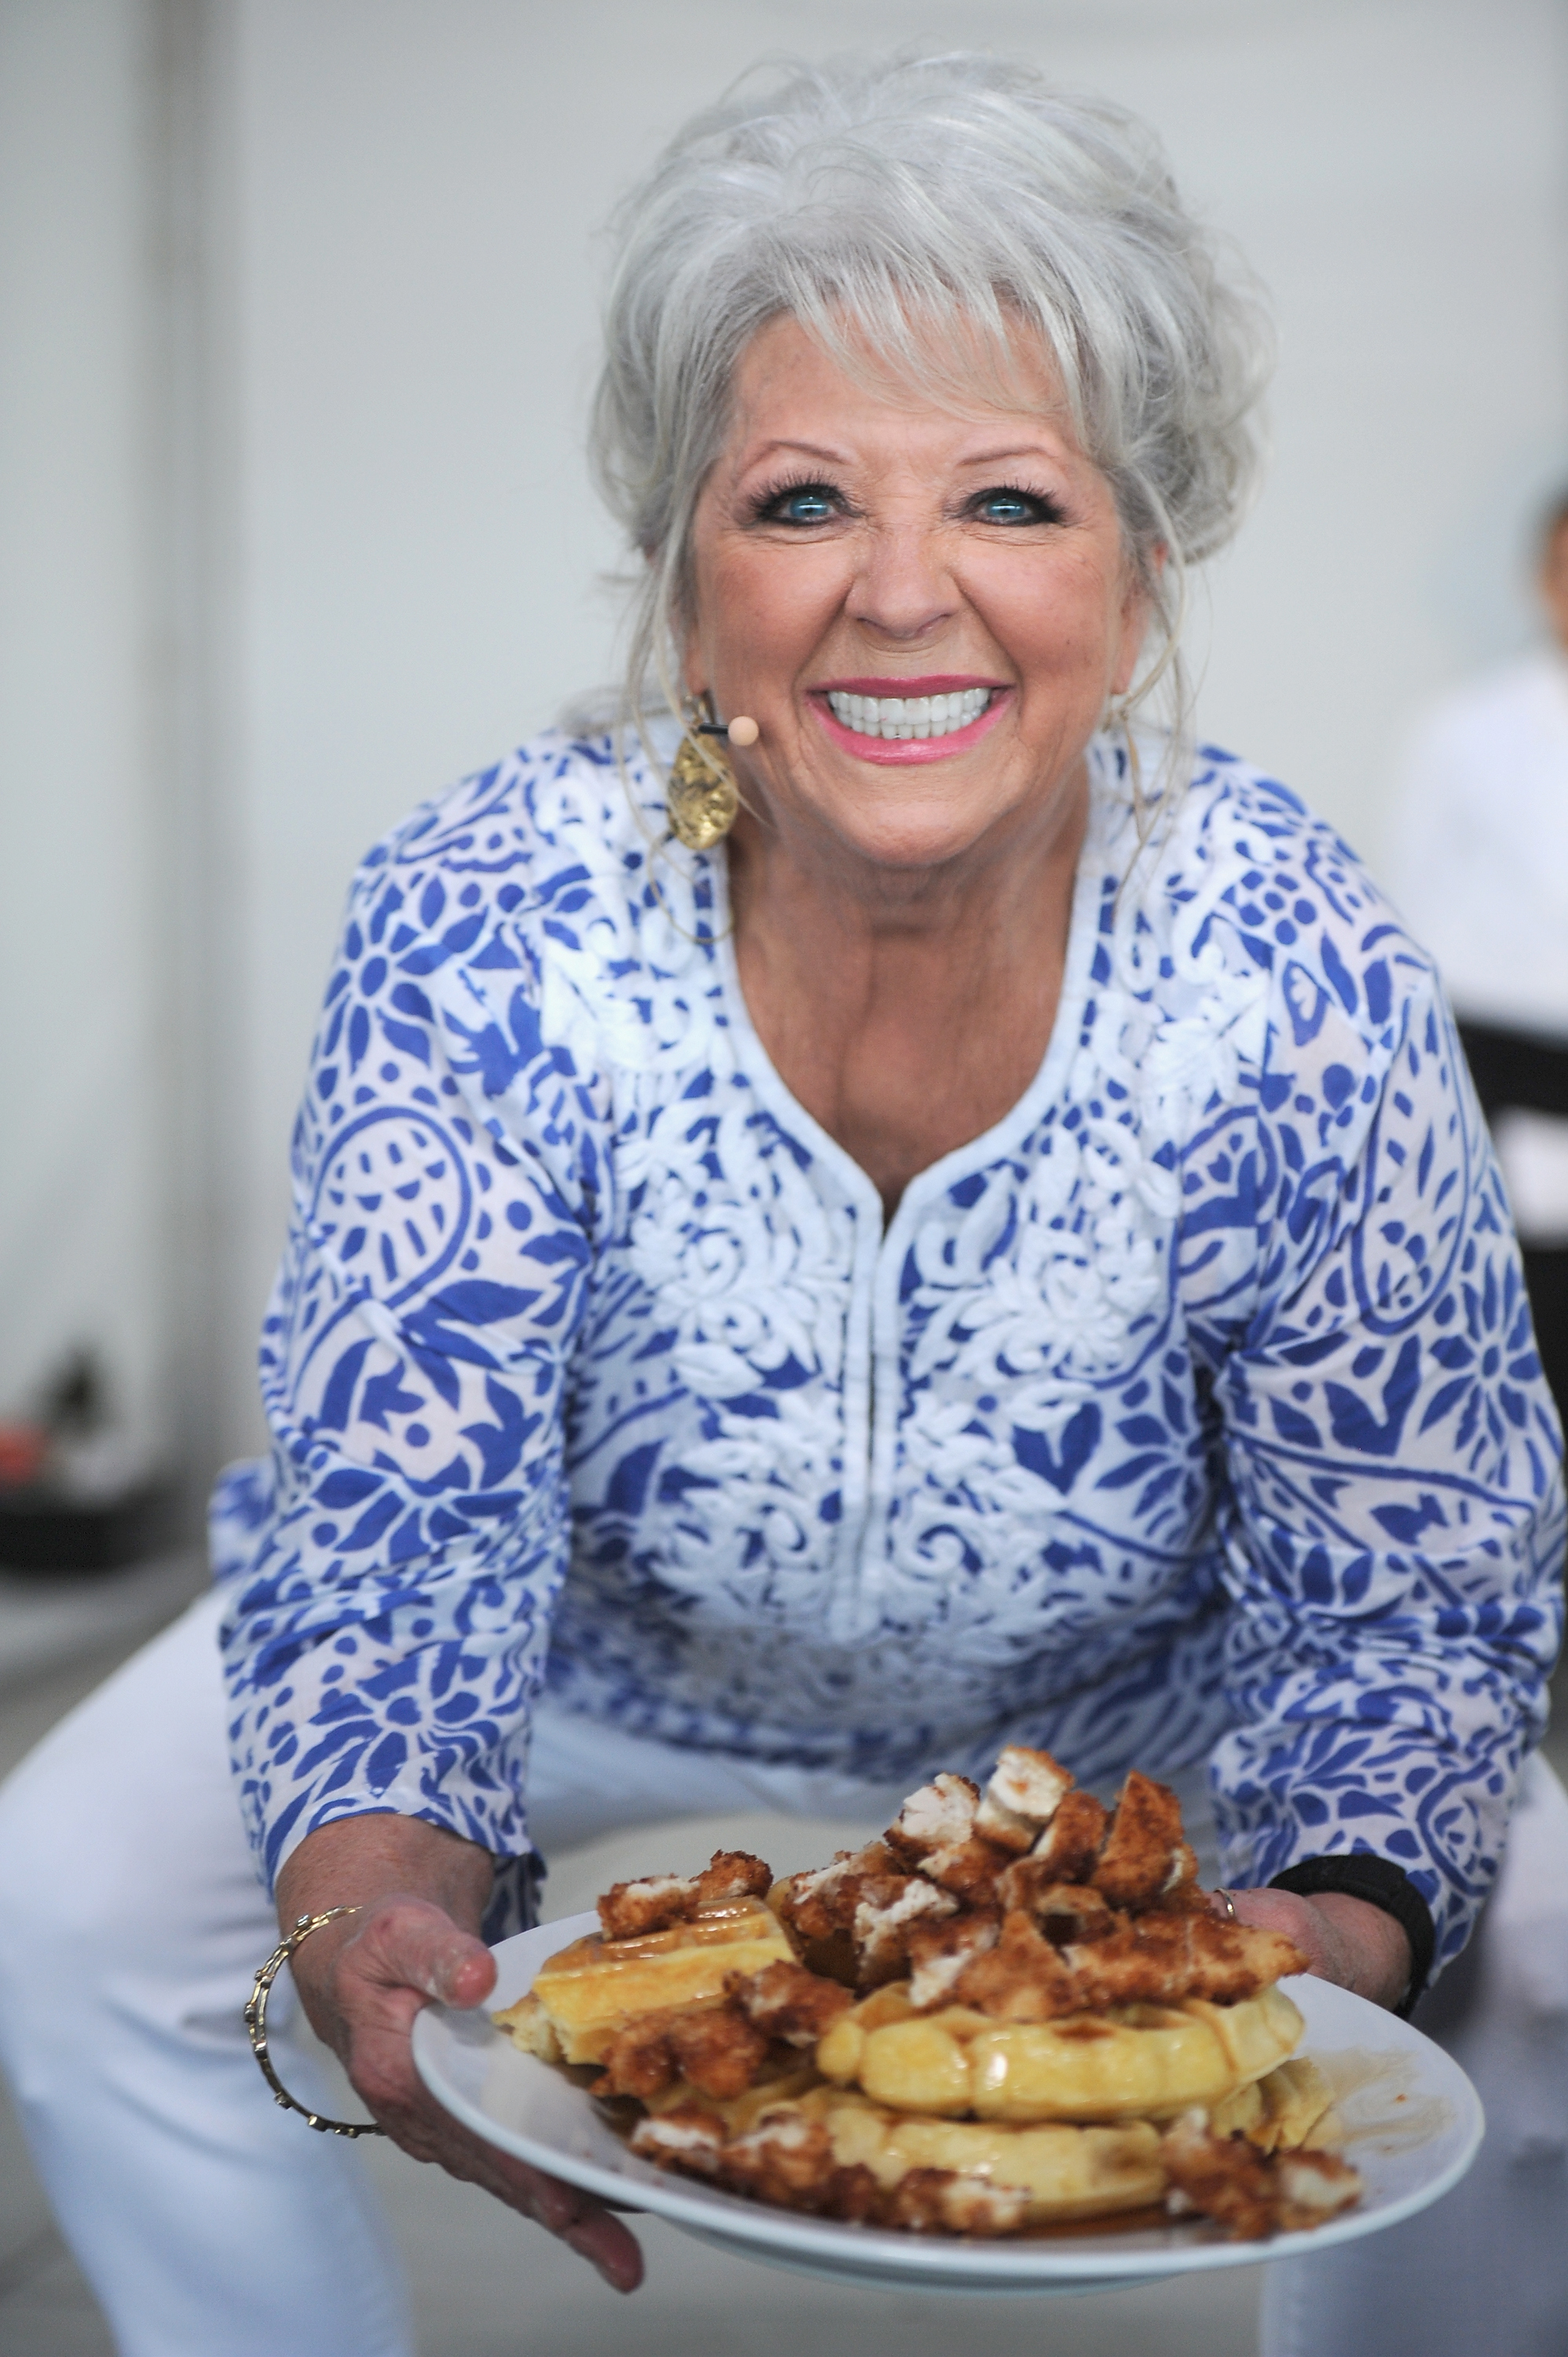 Paula Deen attends the Whole Foods Market Grand Tasting Village during the 2015 Food Network and Cooking Channel South Beach Wine and Food Festival on February 22, 2015 in Miami Beach, Florida.